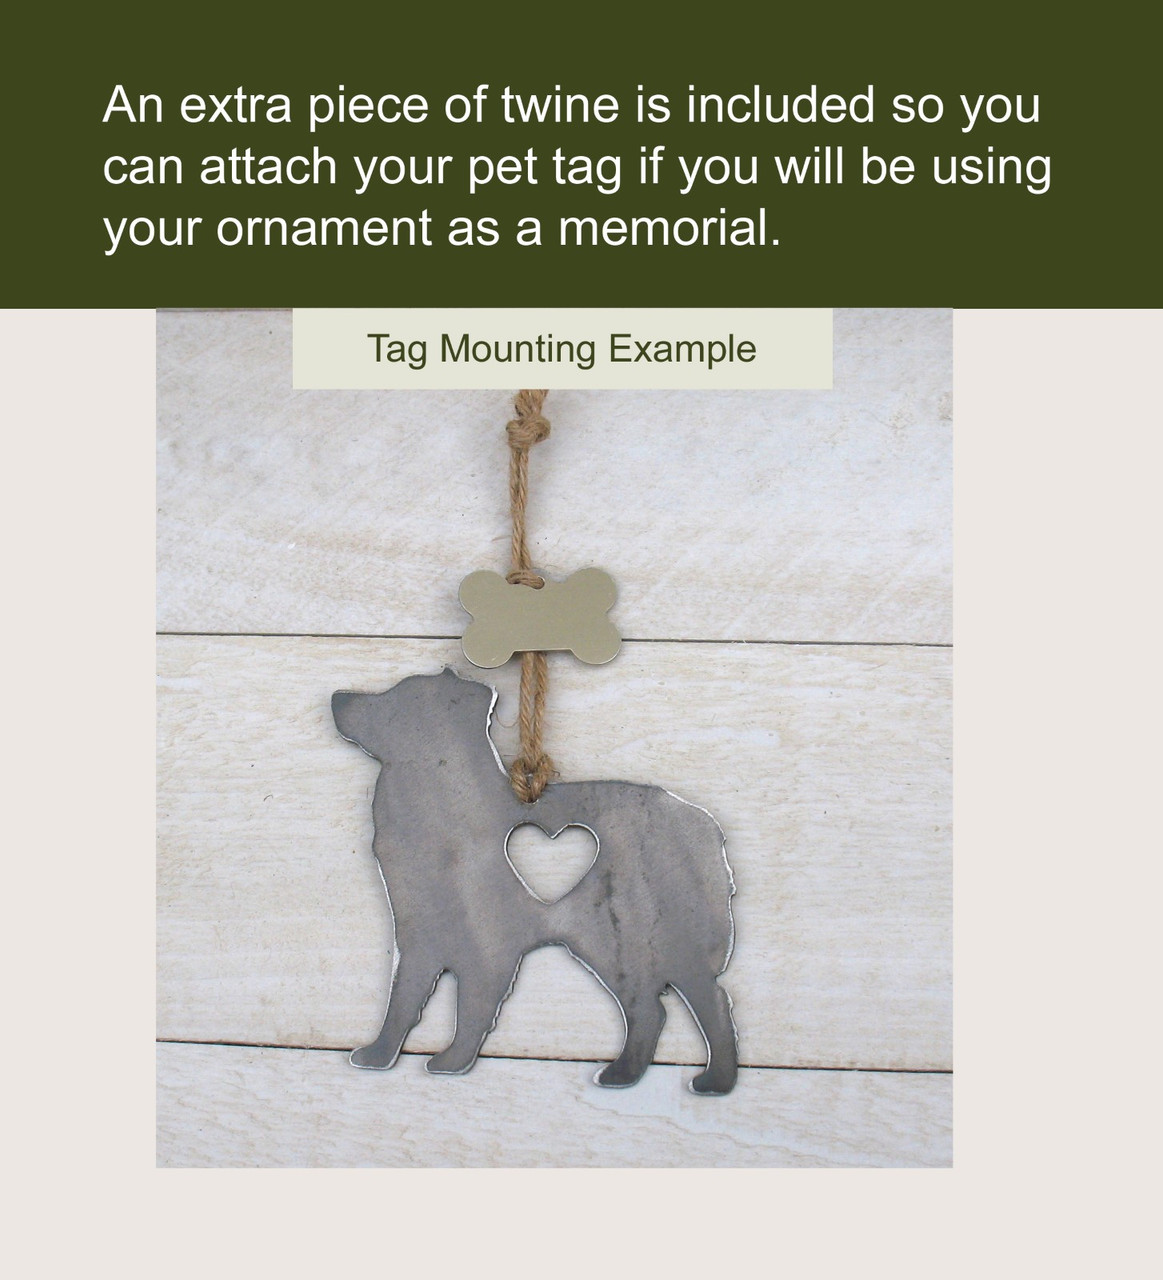 Weimaraner 3 Pet Loss Gift Ornament - Pet Memorial - Dog Sympathy Remembrance Gift - Metal Dog Christmas Ornament